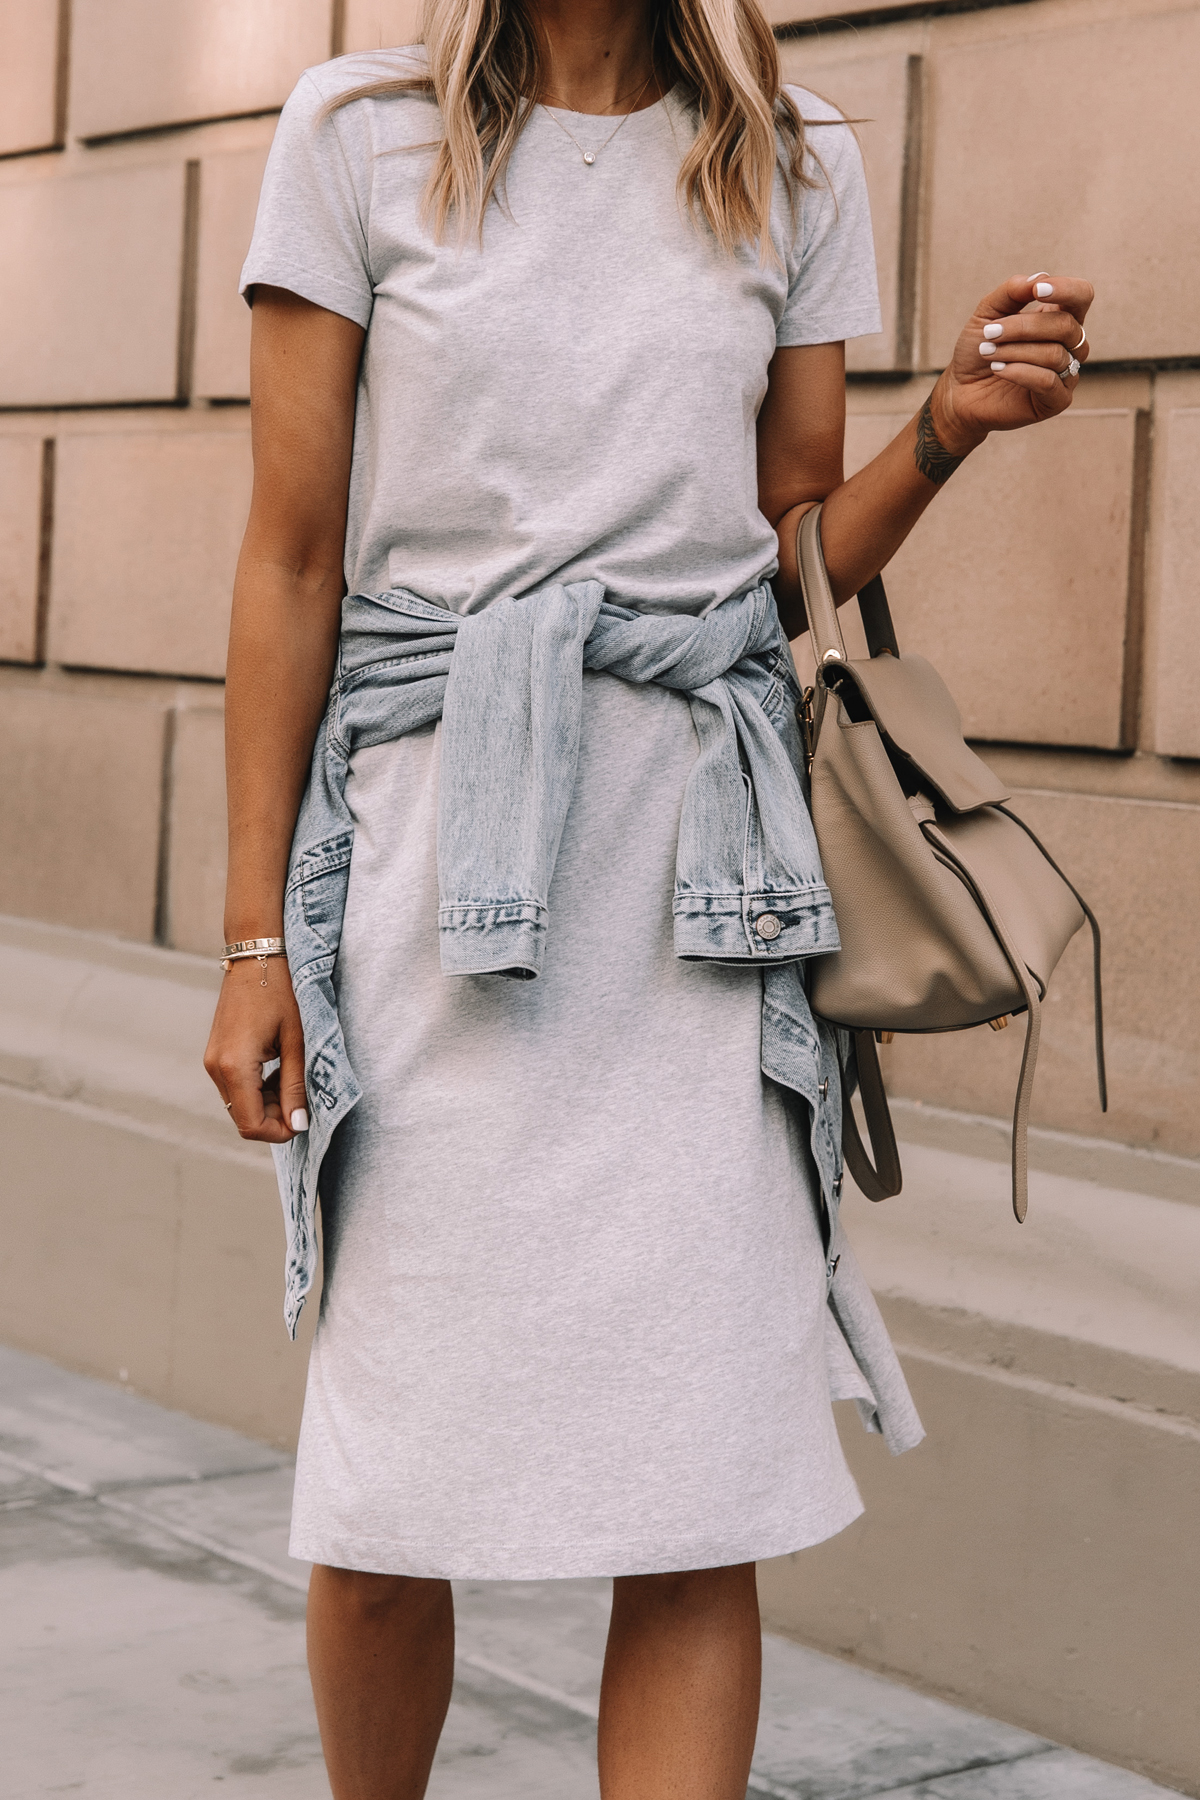 T-Shirt Dresses Are A Summer Essential - Here's How to Style Them ...